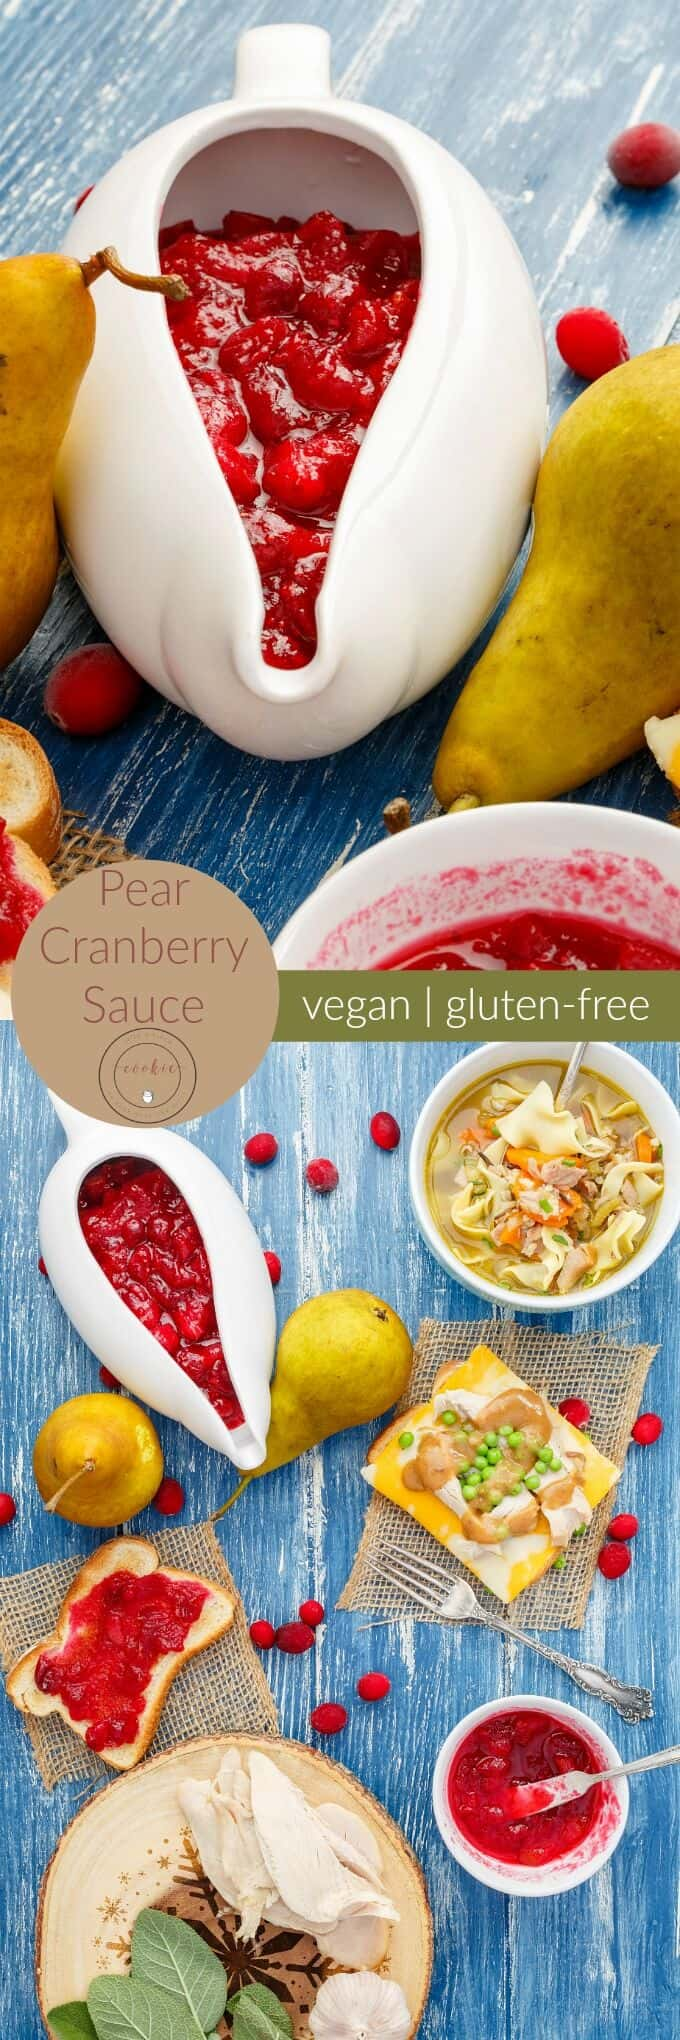 Pear Cranberry Sauce